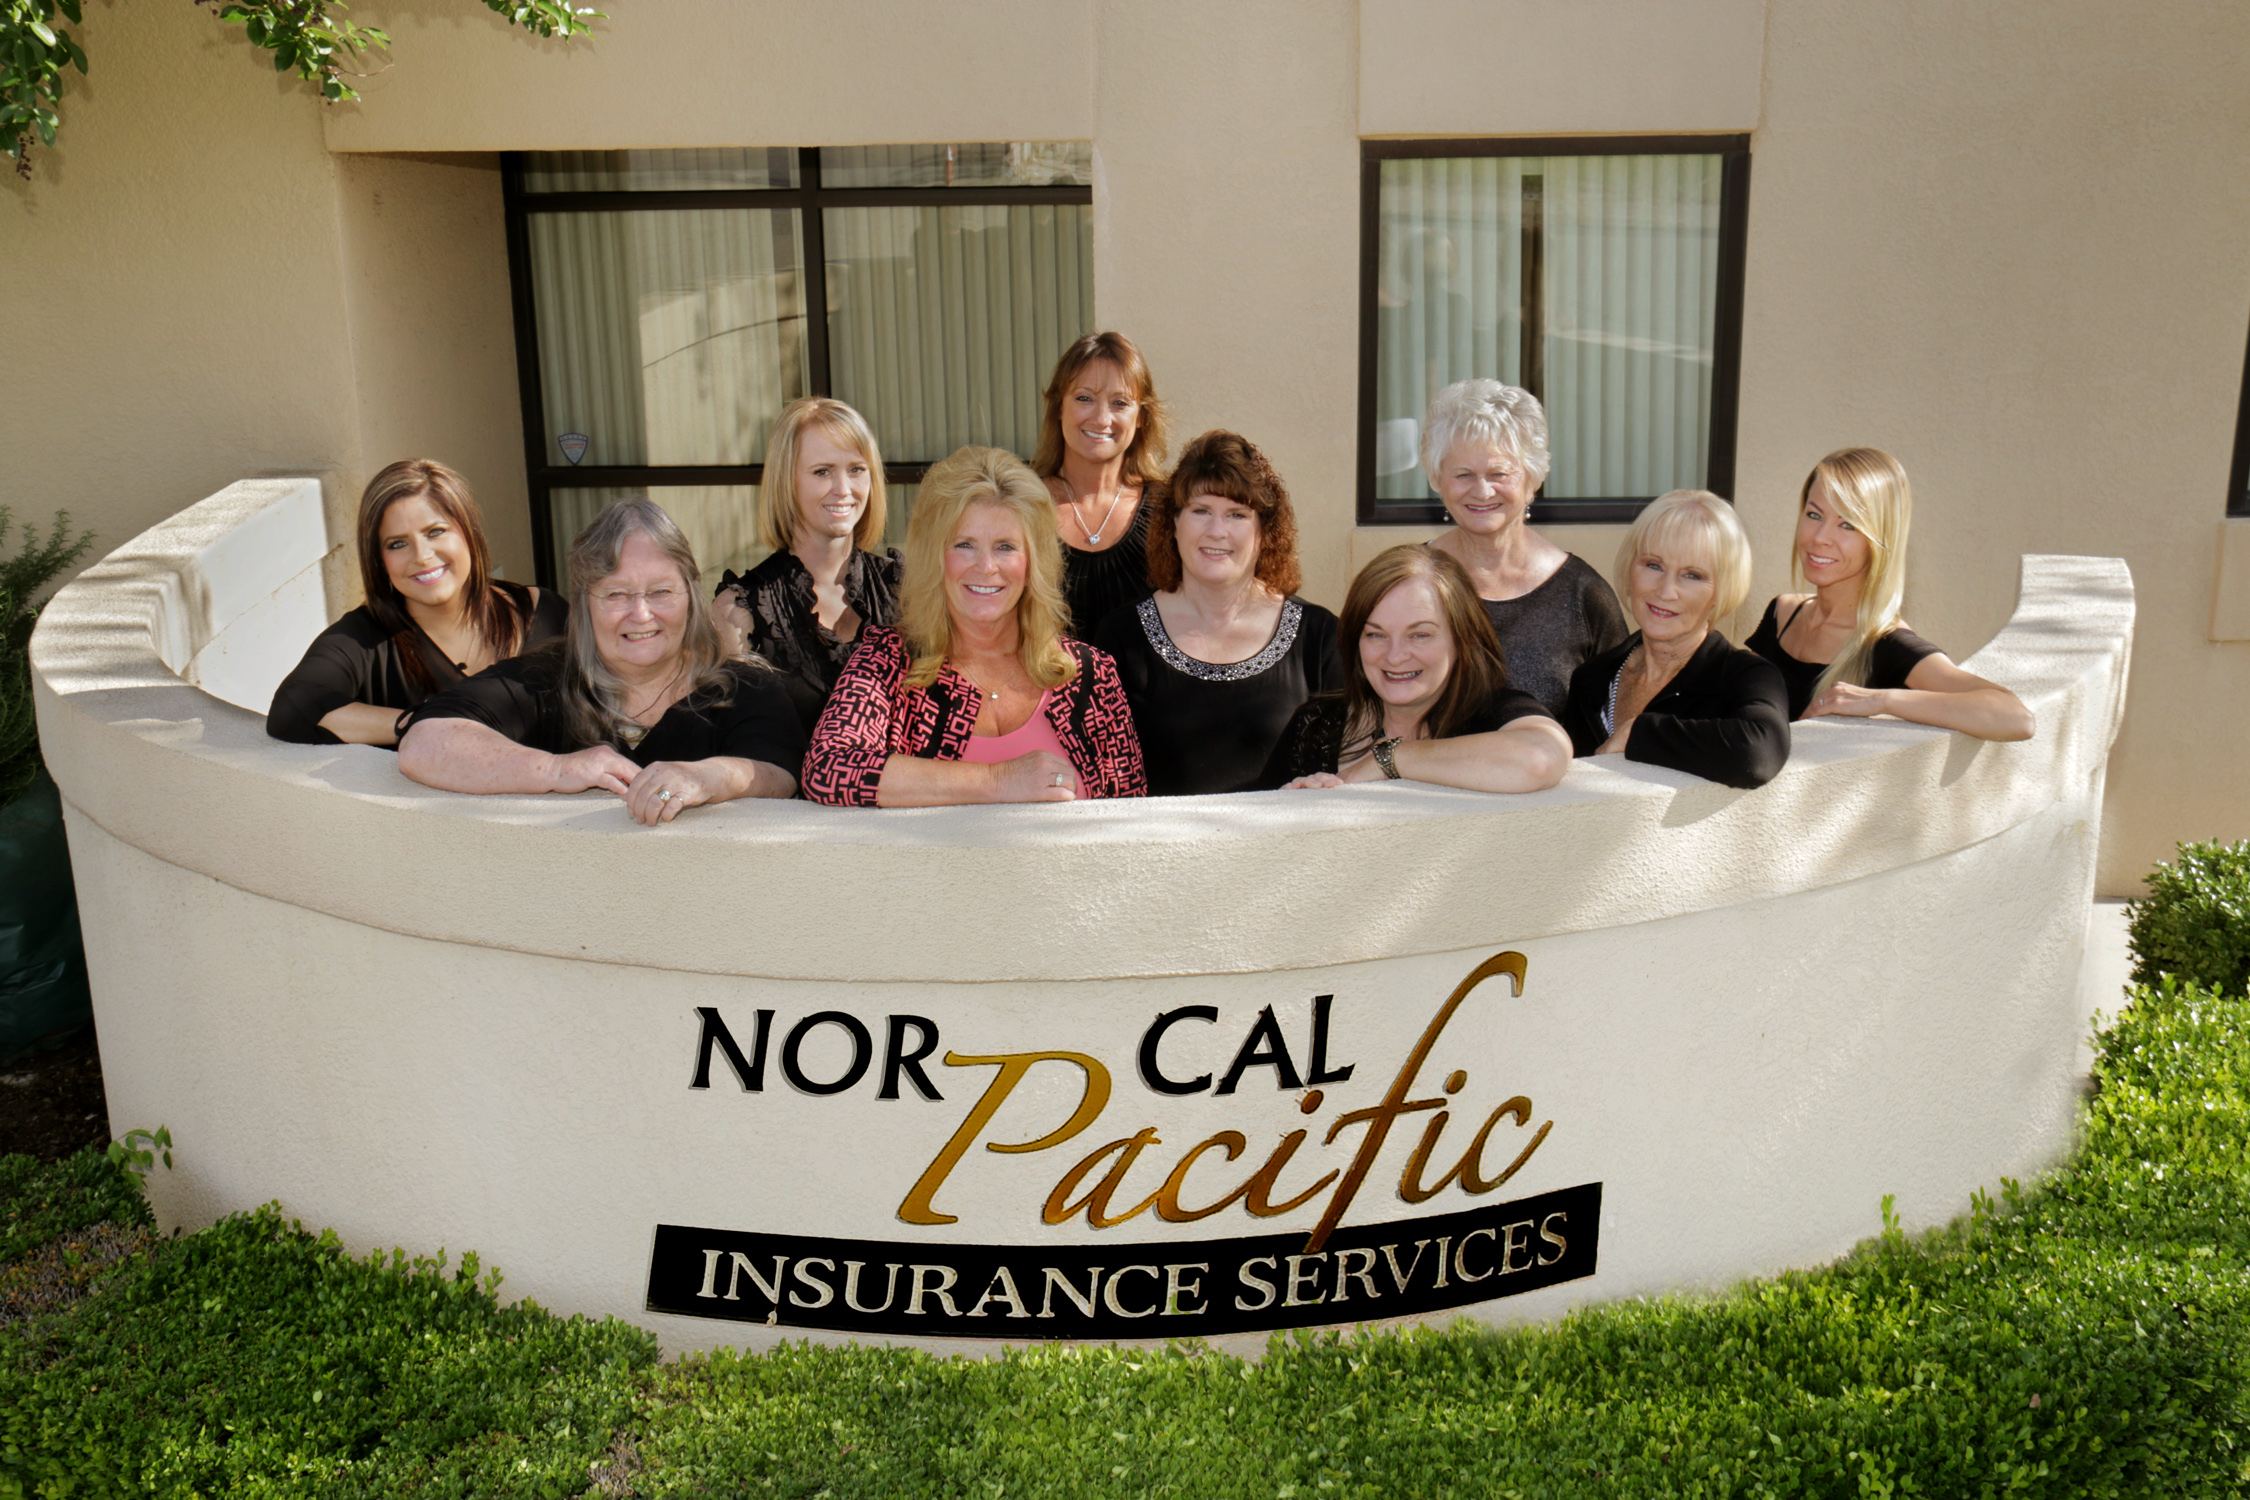 Nor Cal Pacific Insurance Services